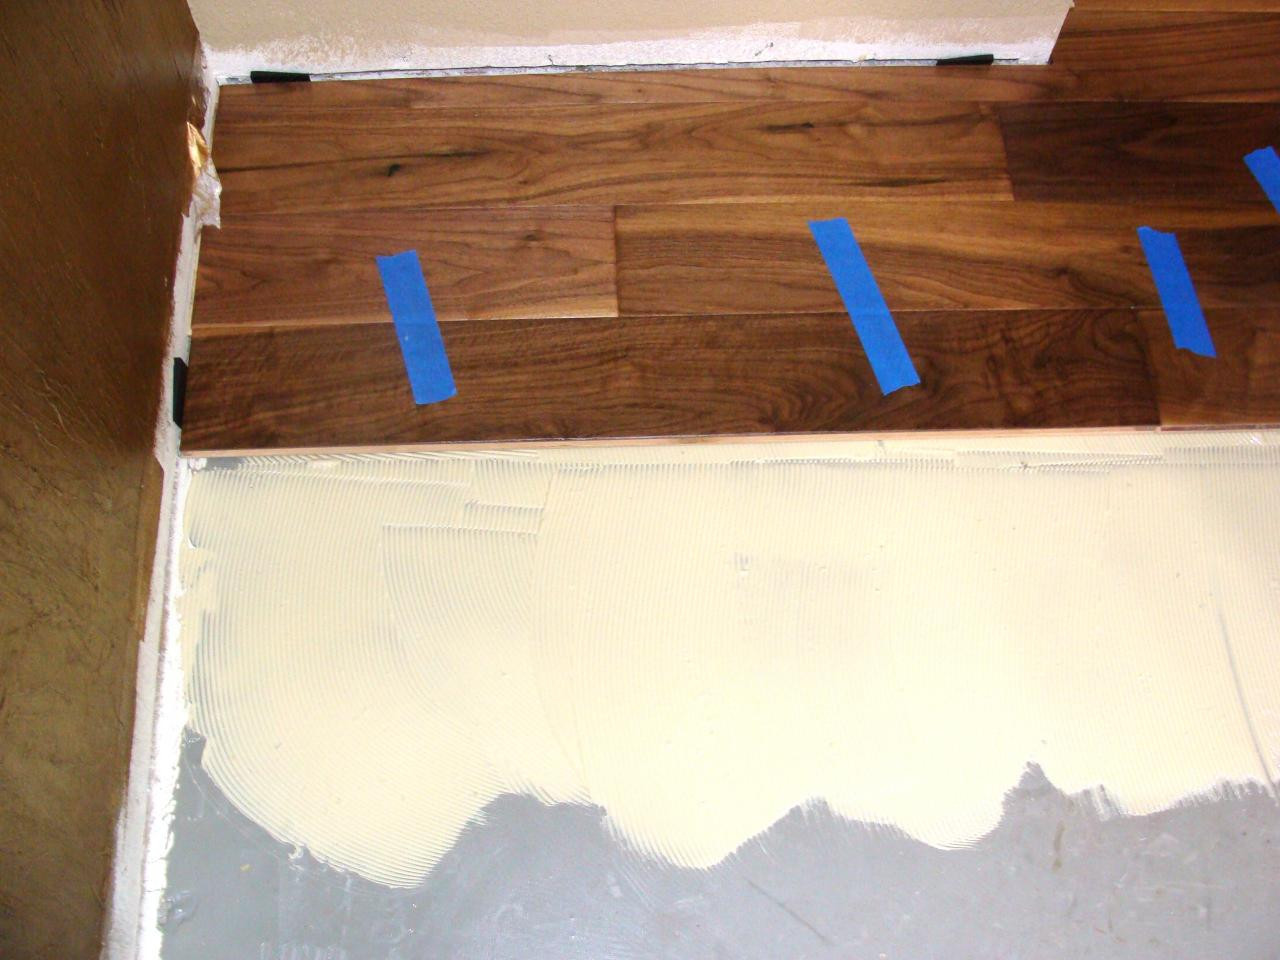 21 Great Gluing Hardwood Floors to Concrete 2021 free download gluing hardwood floors to concrete of how to remove tile glue from concrete new afm safecoat 3 in 1 with how to remove tile glue from concrete beautiful installing hardwood flooring over con